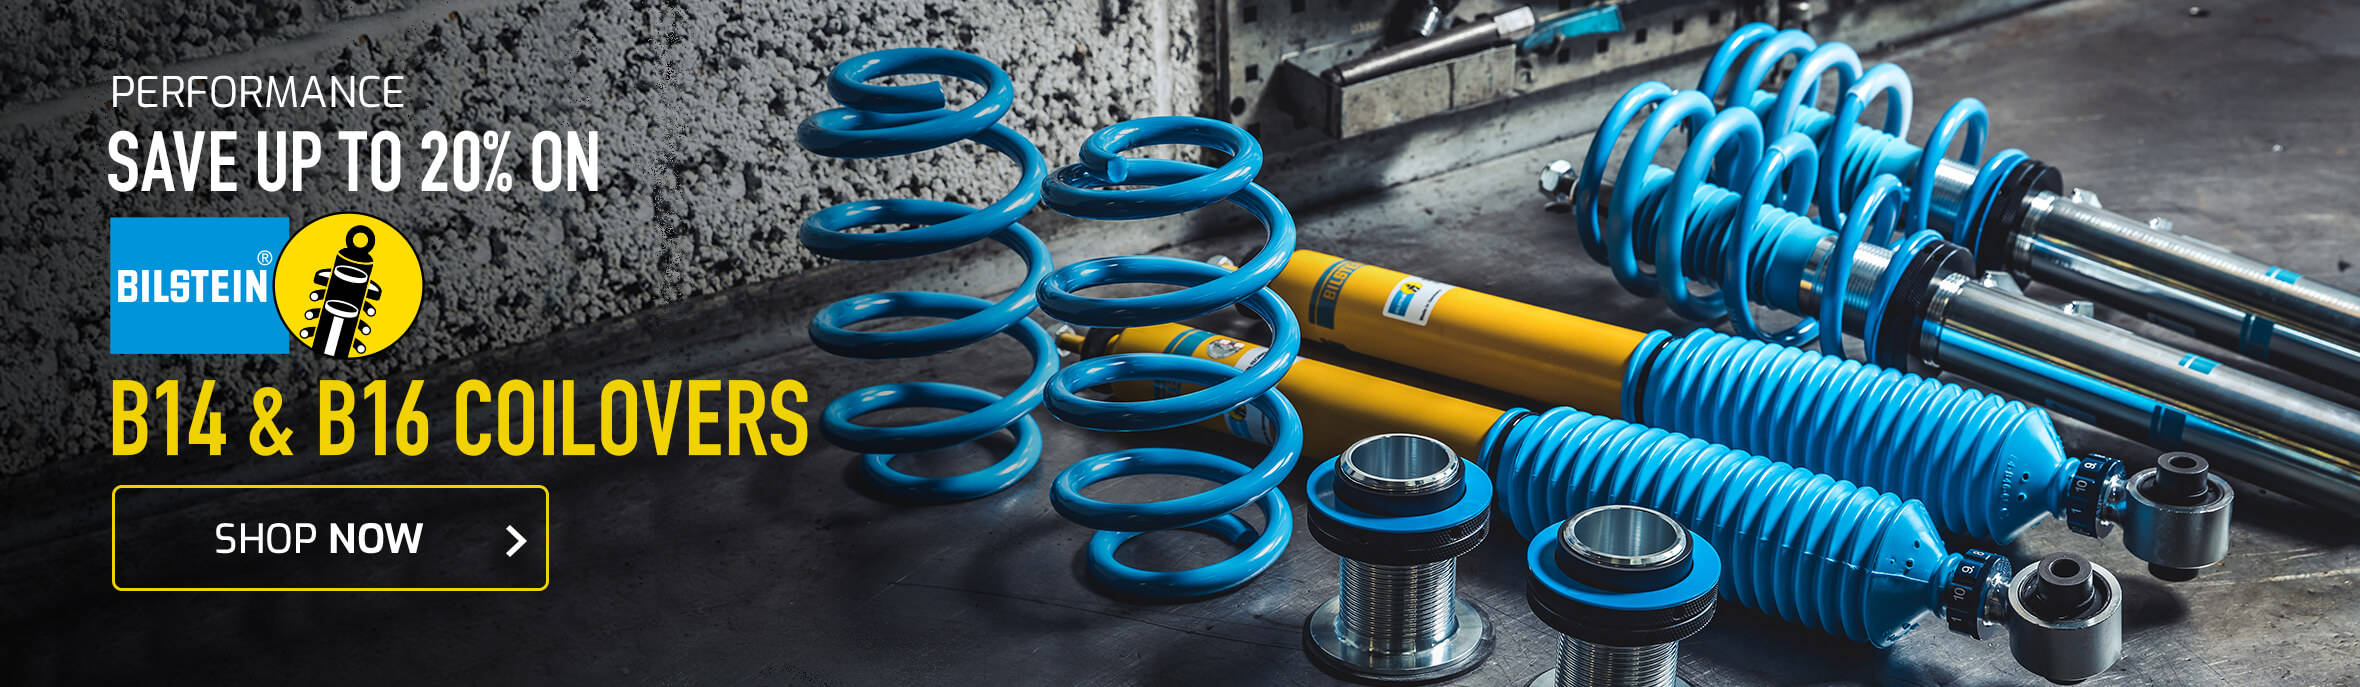 Save up to 20% on Bilstein B14 & B16 Coilovers